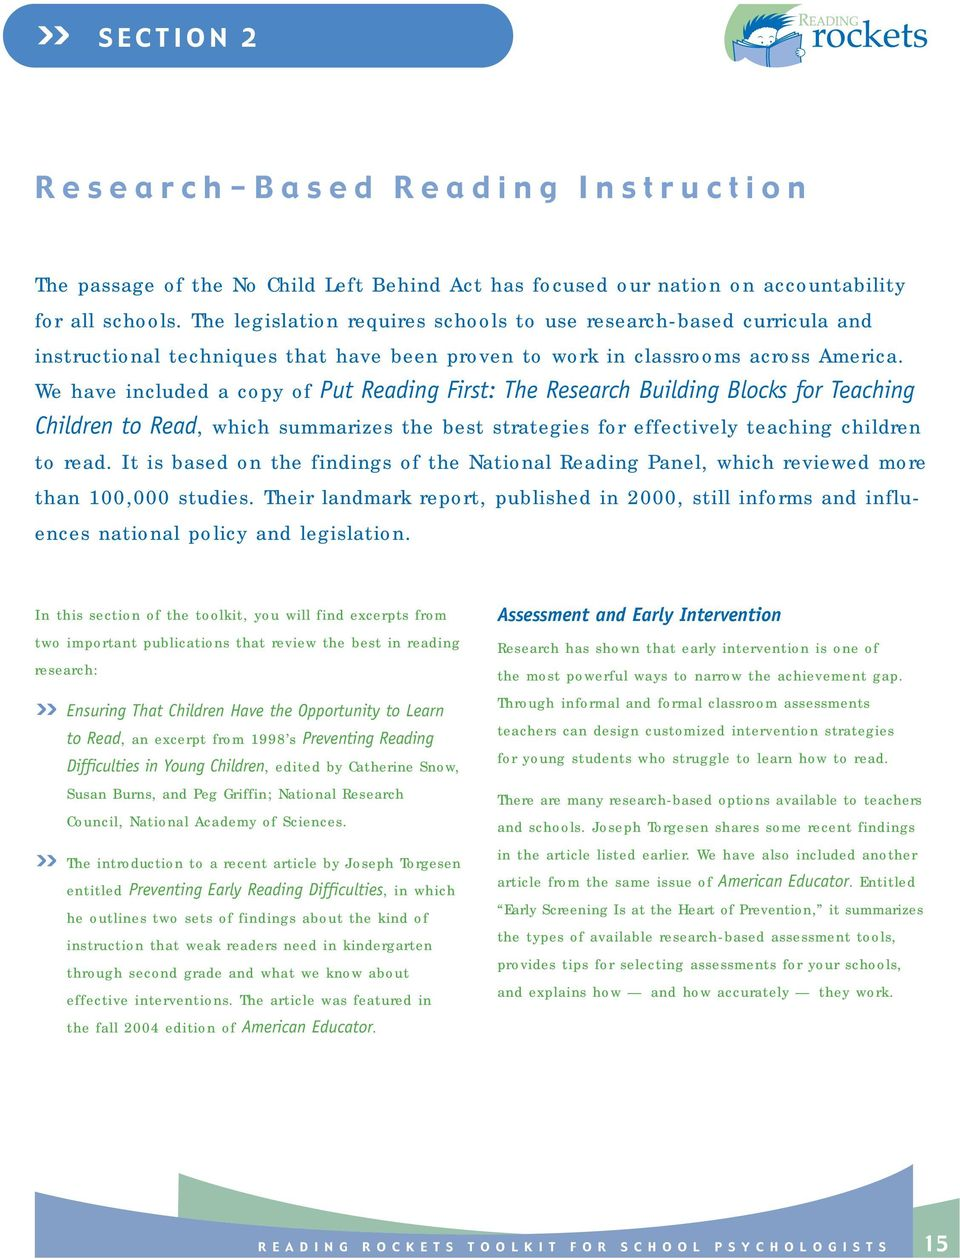 We have included a copy of Put Reading First: The Research Building Blocks for Teaching Children to Read, which summarizes the best strategies for effectively teaching children to read.